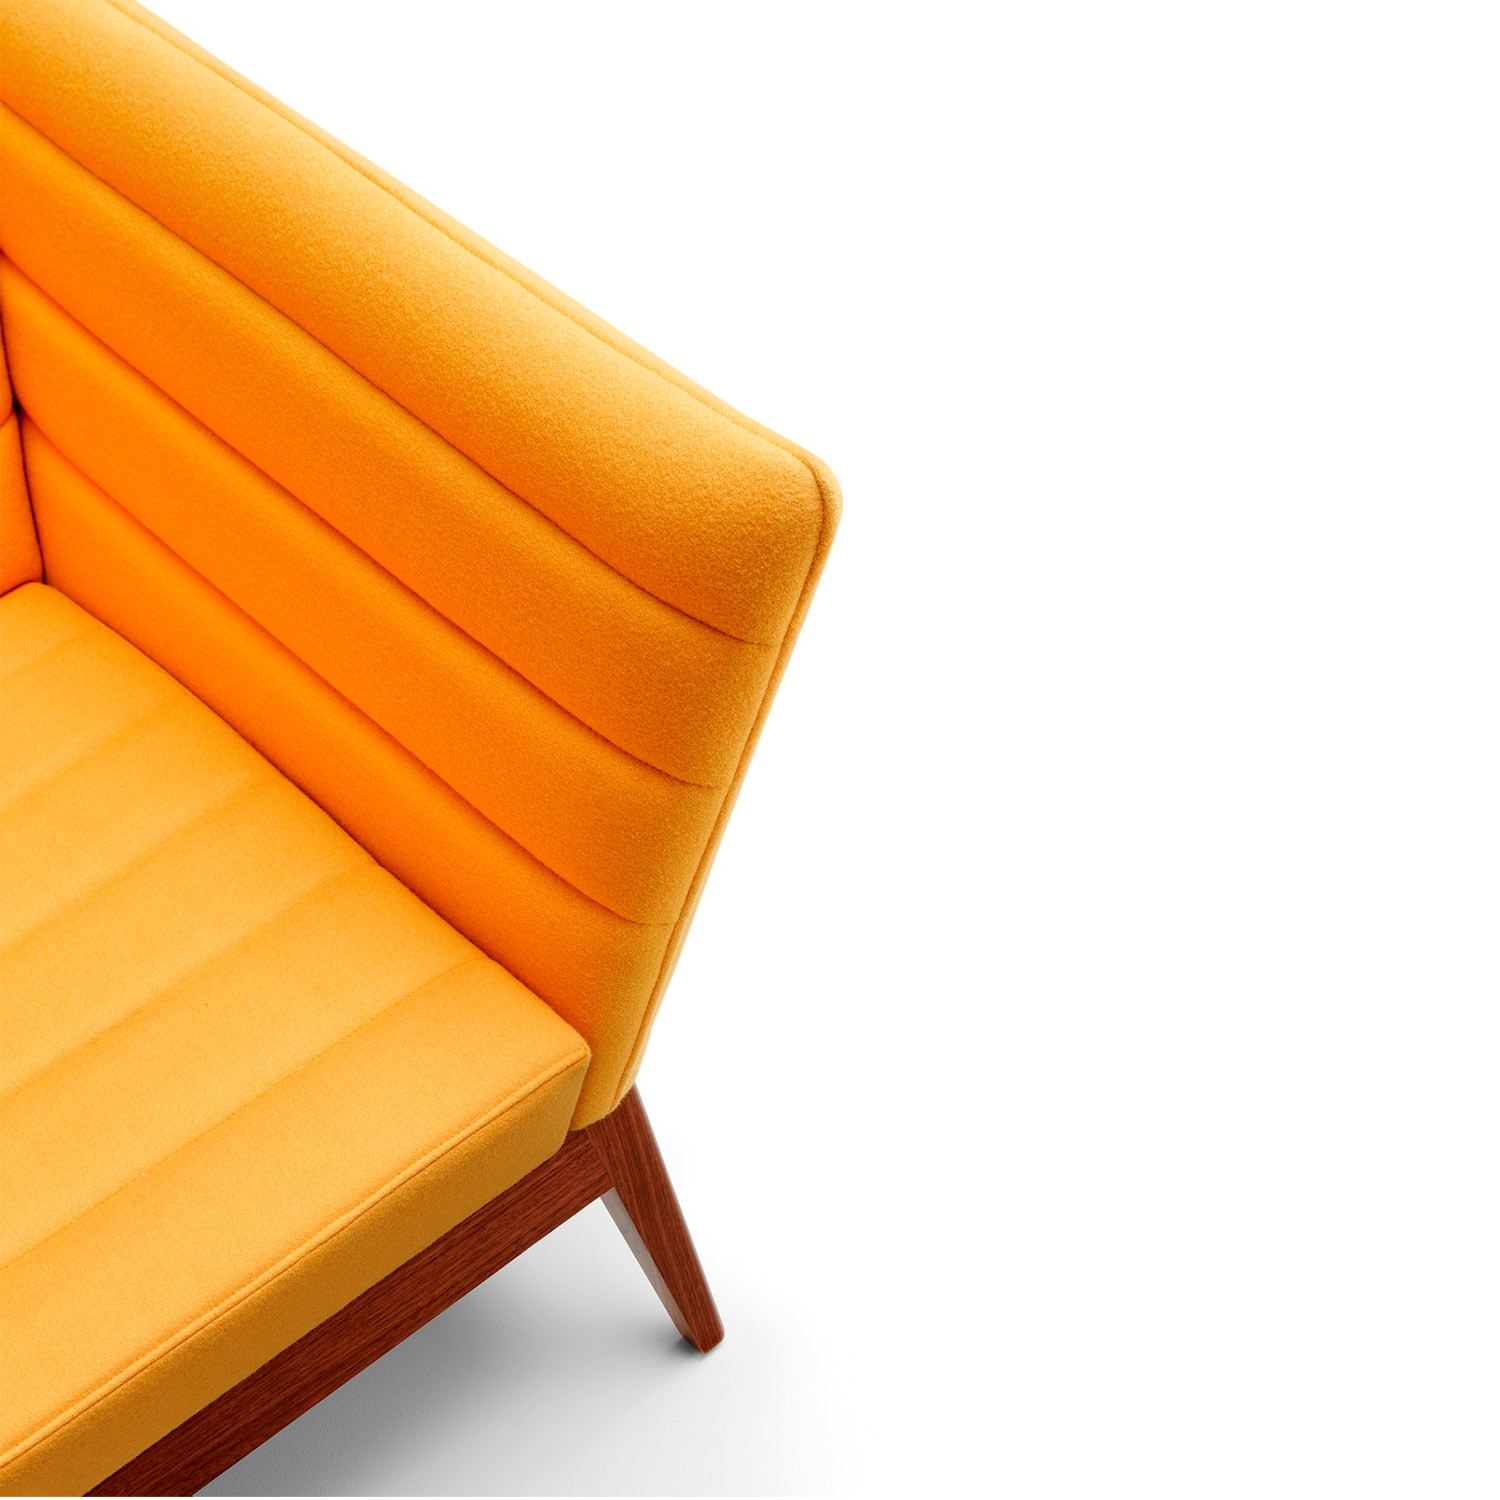 Callisto Armchair from Lyndon Design